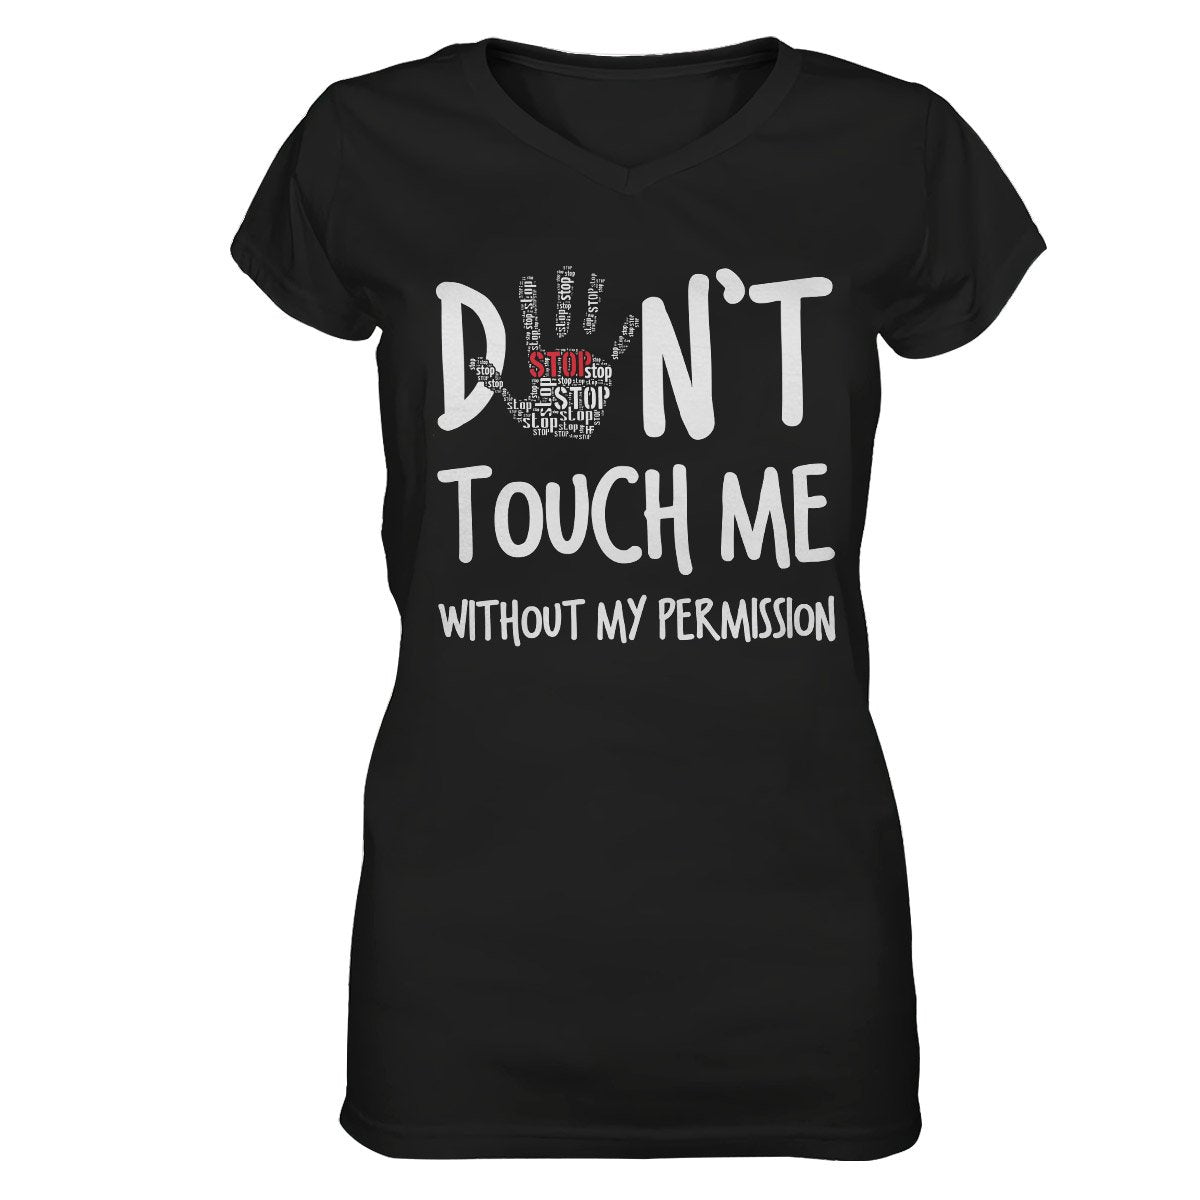 Don't Touch Me Without My Permission Feminism EZ22 0510 Women V-neck T-shirt